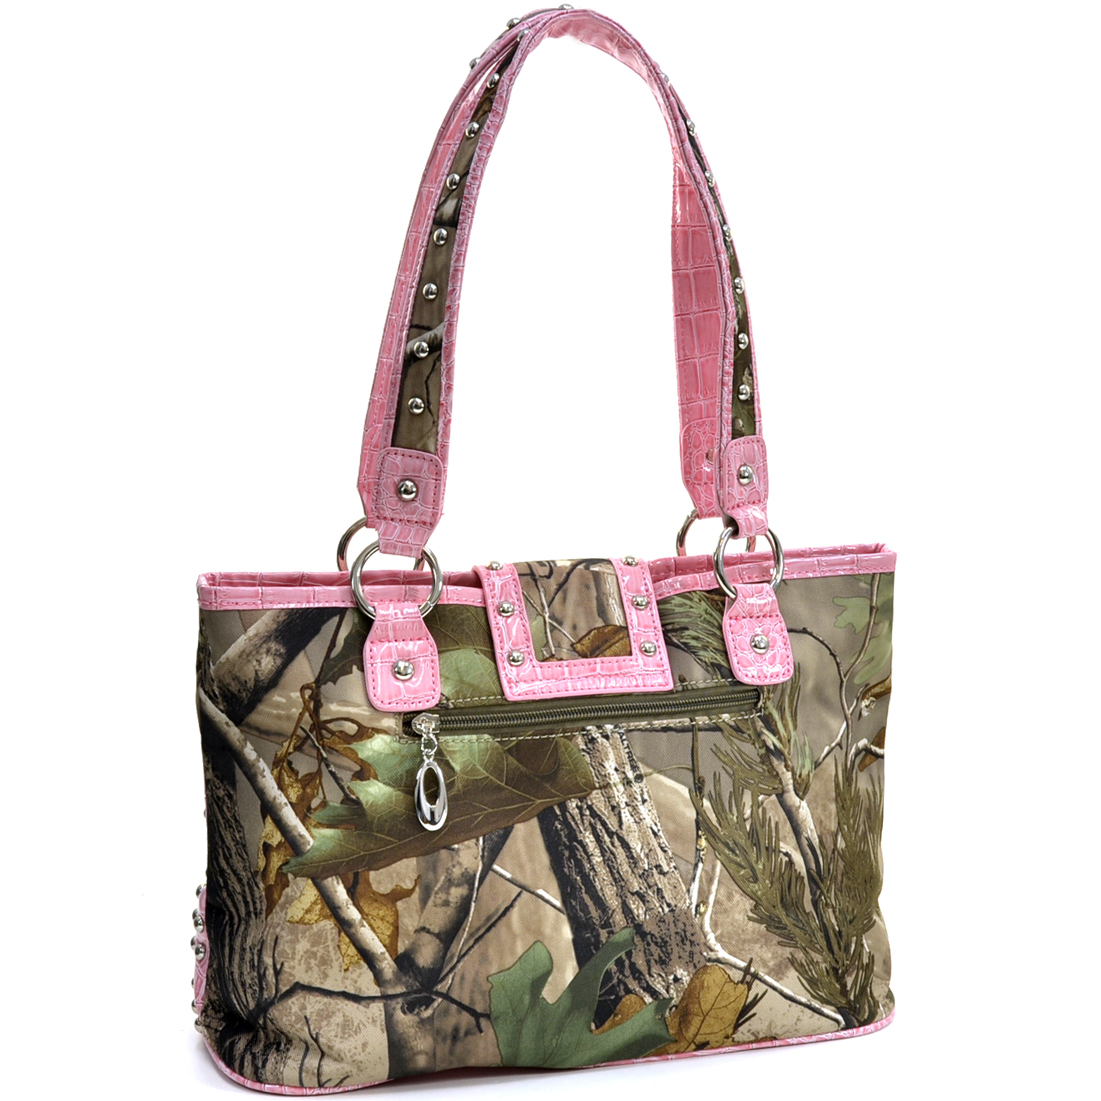 Realtree ® XG Camo Studded Tote Bag with Croco Trim and Buckle Accent